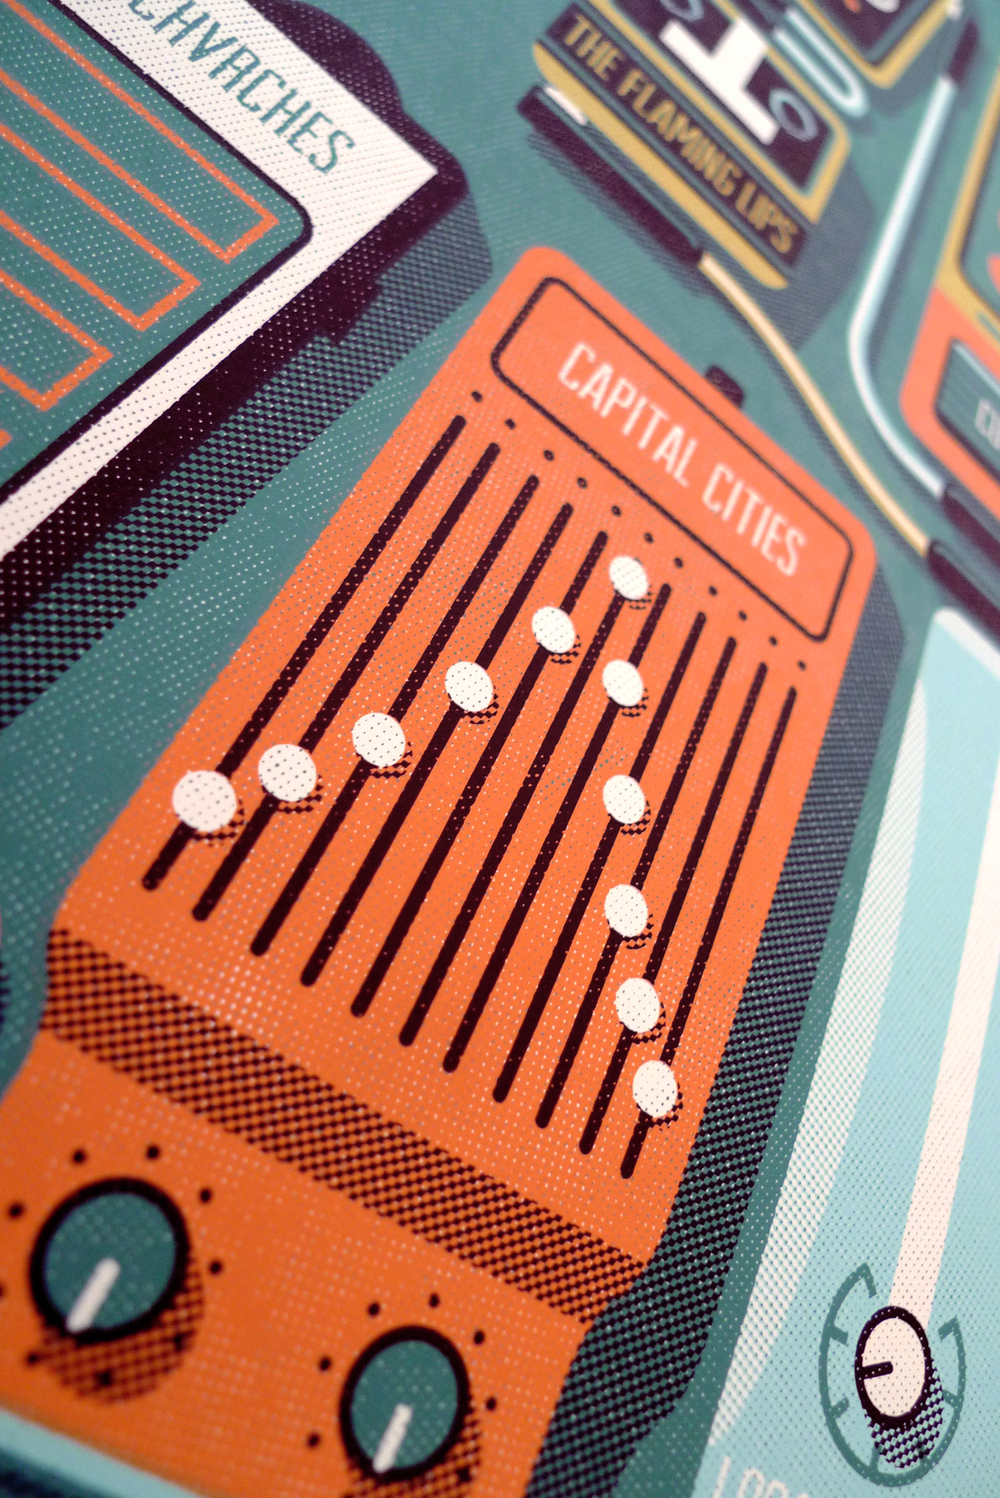 Outside Lands Poster by DKNG